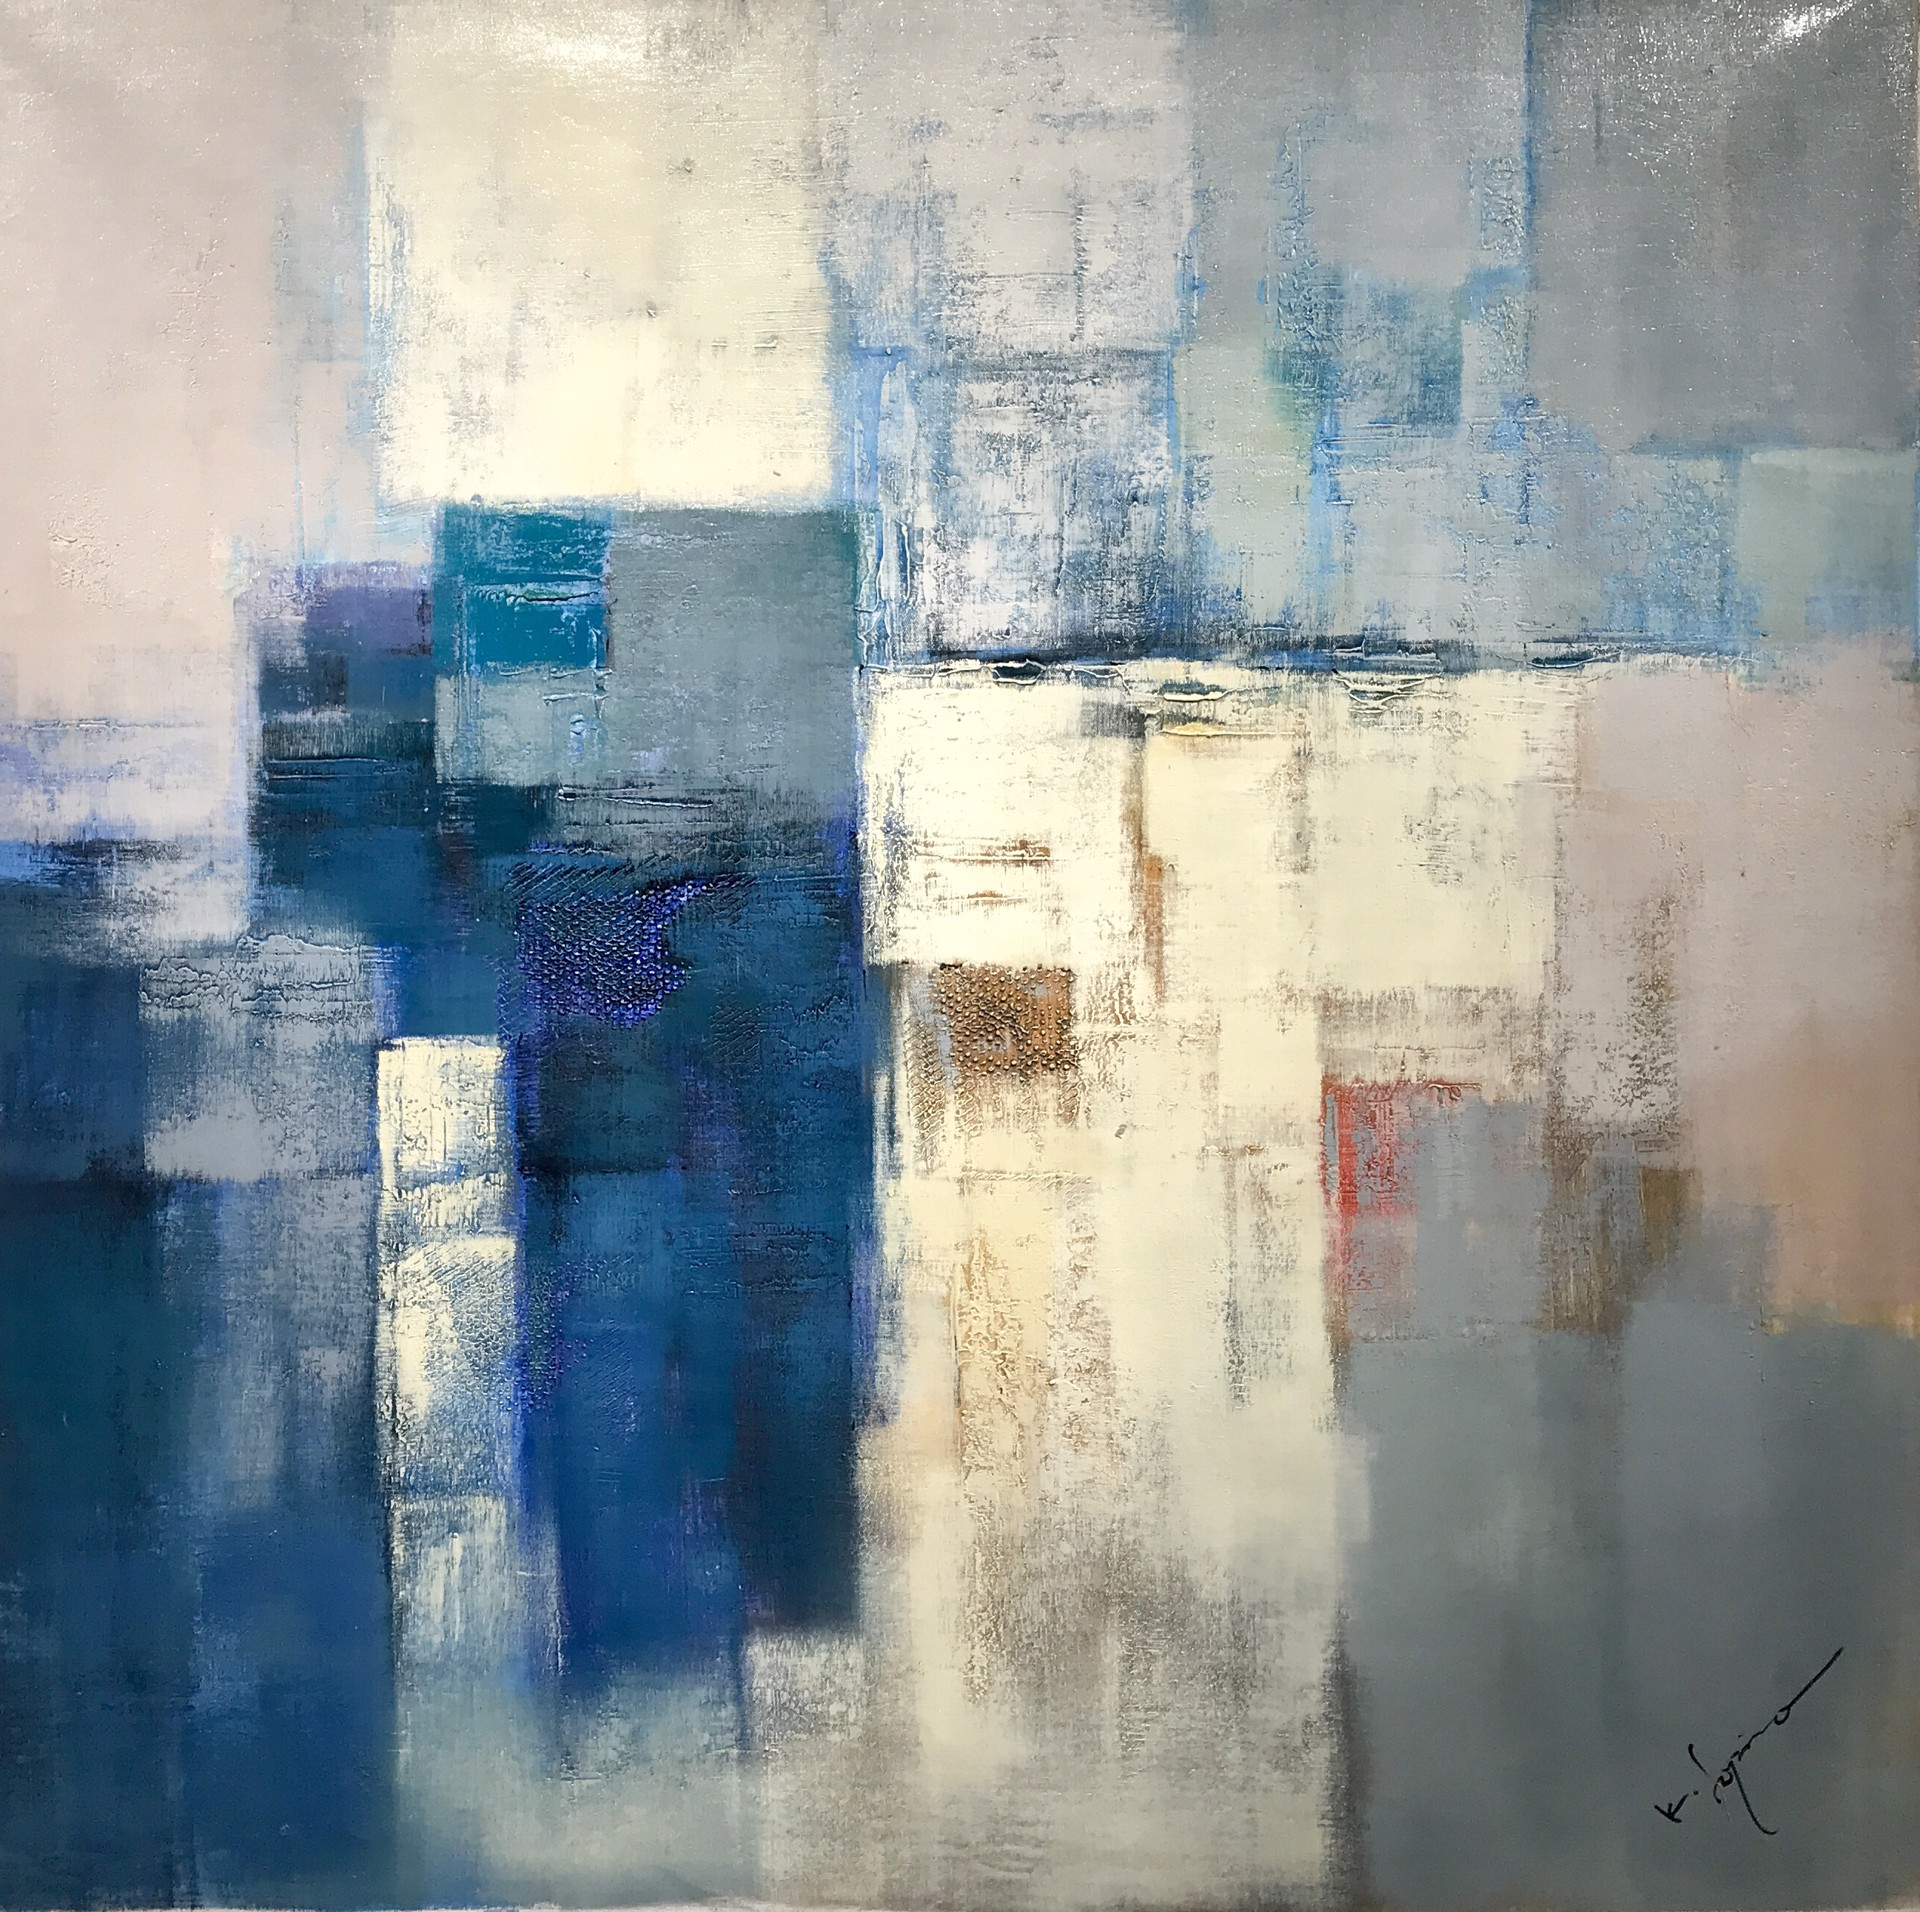 ABS. GEOMETRIC CREAMS AND BLUES by K. SOPINO